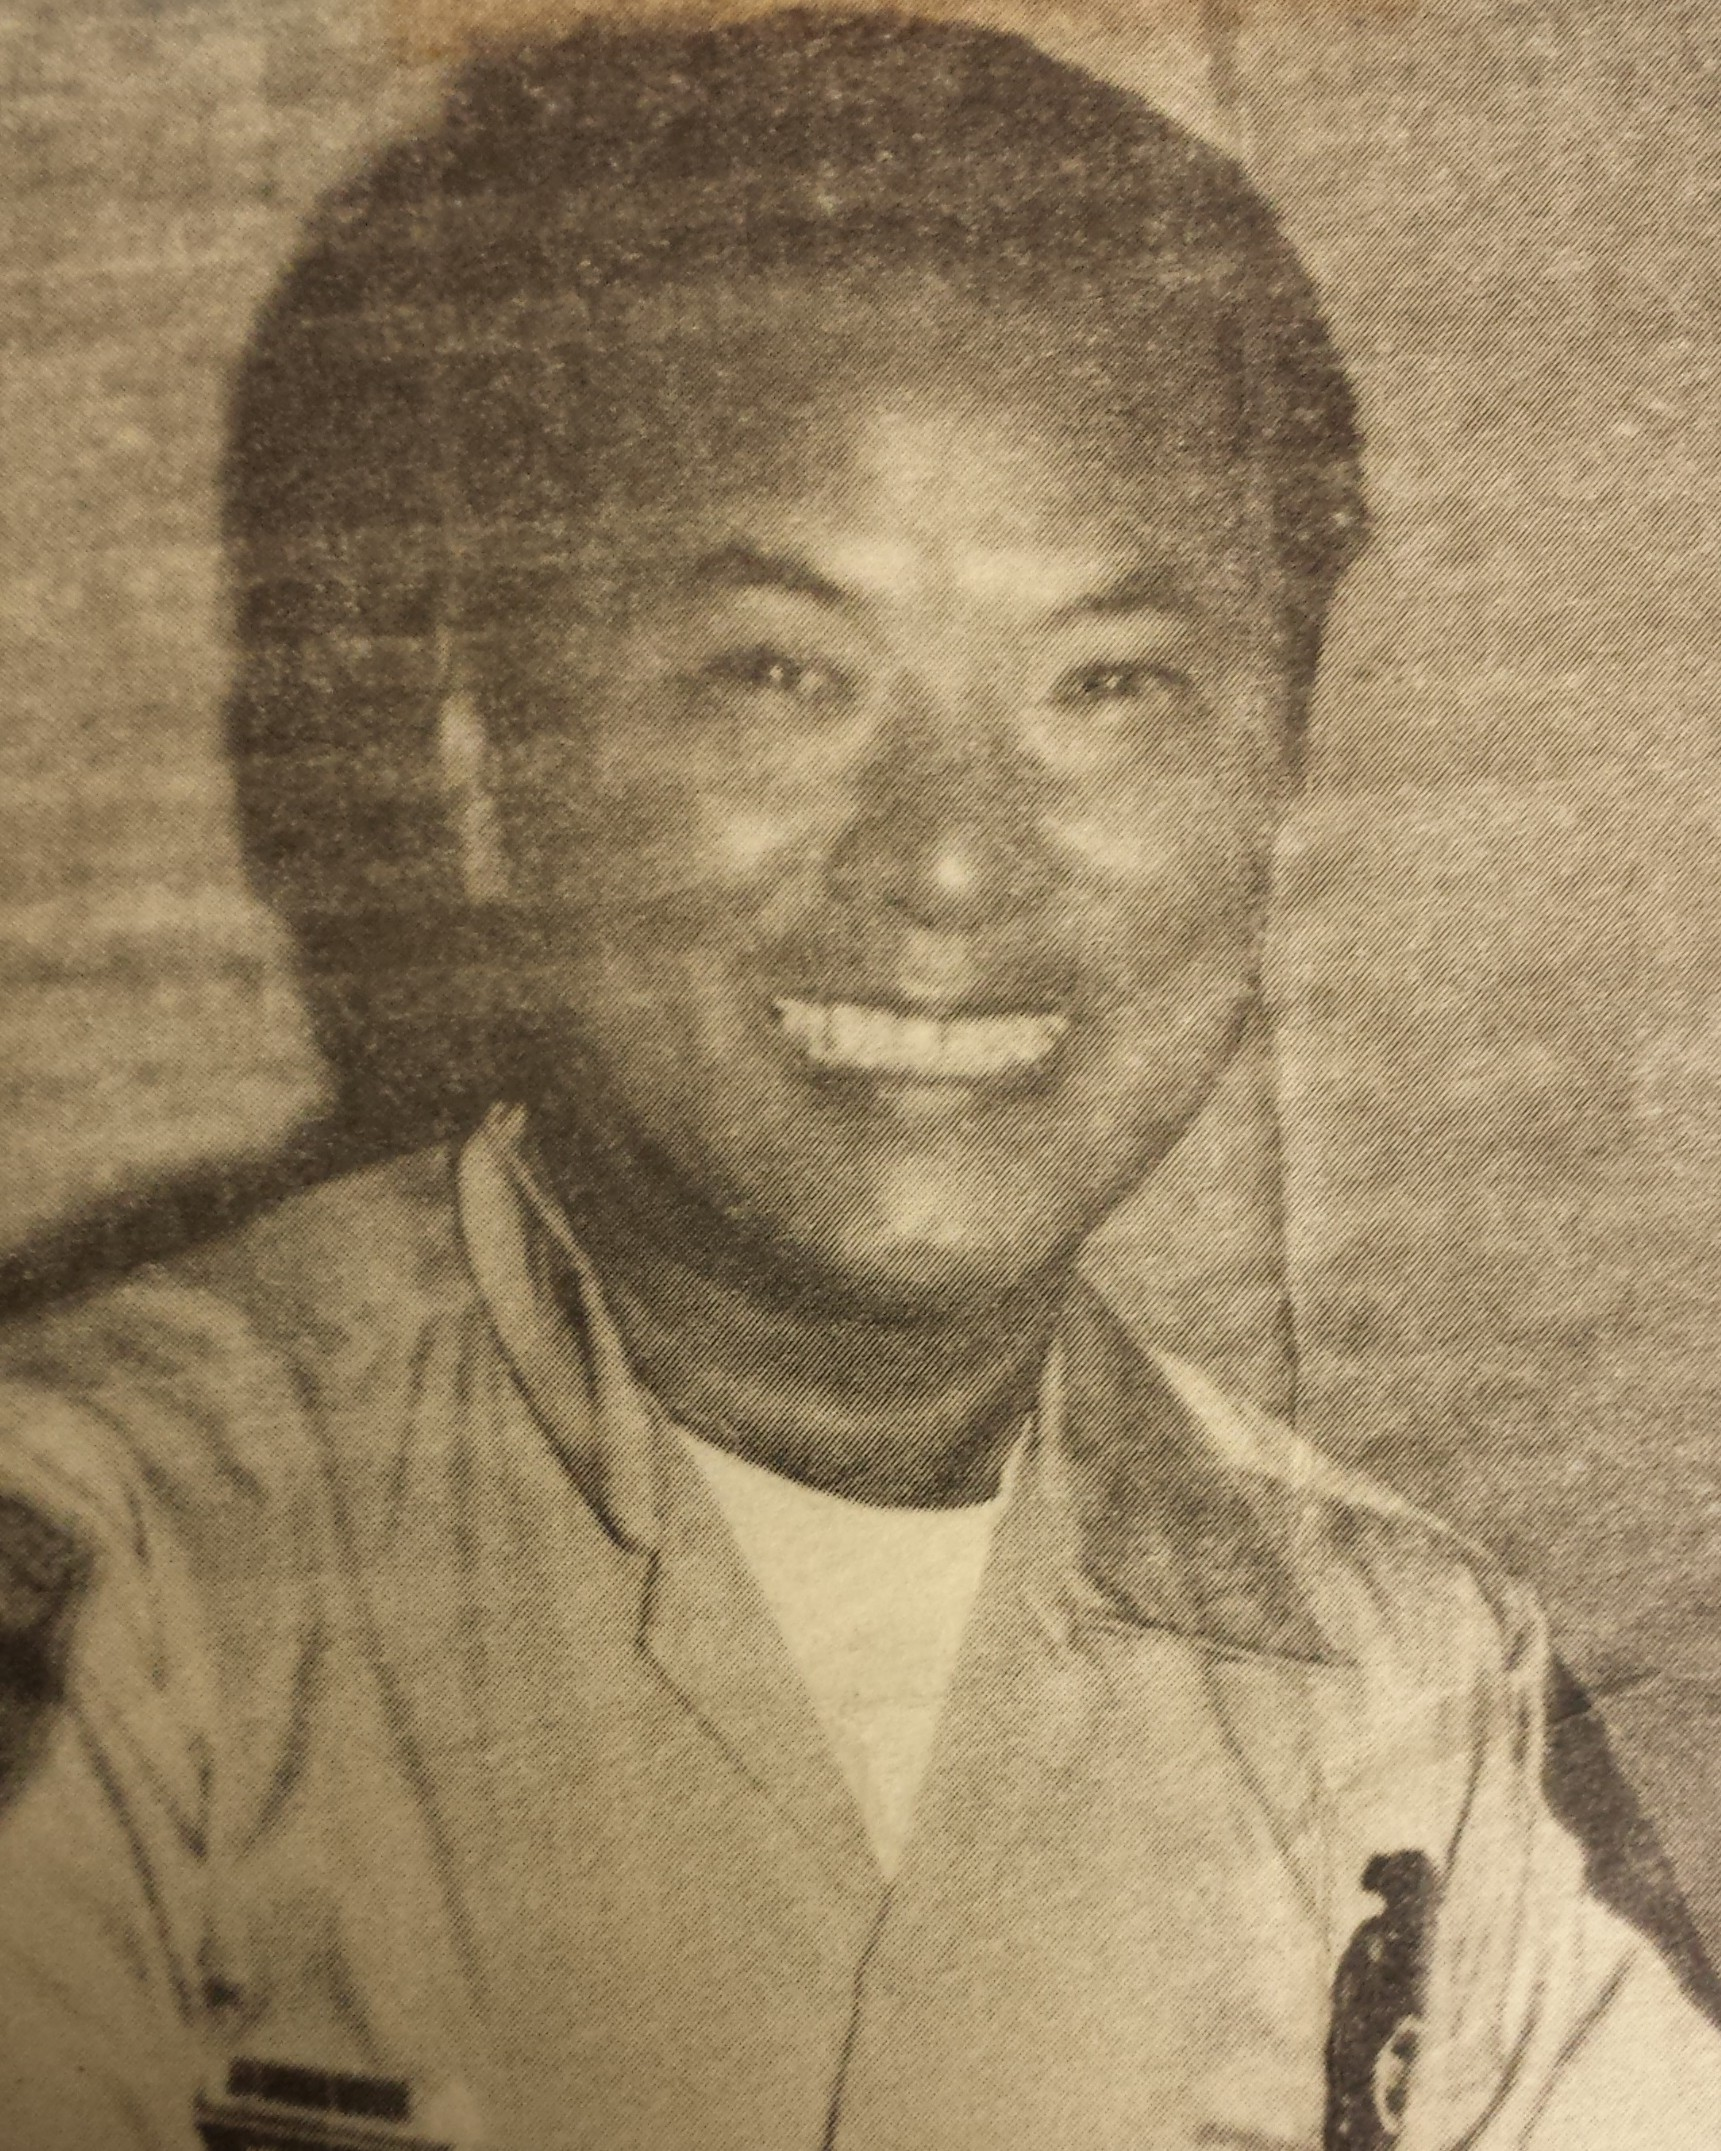 Park Police Officer Howard Shao Wai Huang | Los Angeles County Department of Parks and Recreation Police, California